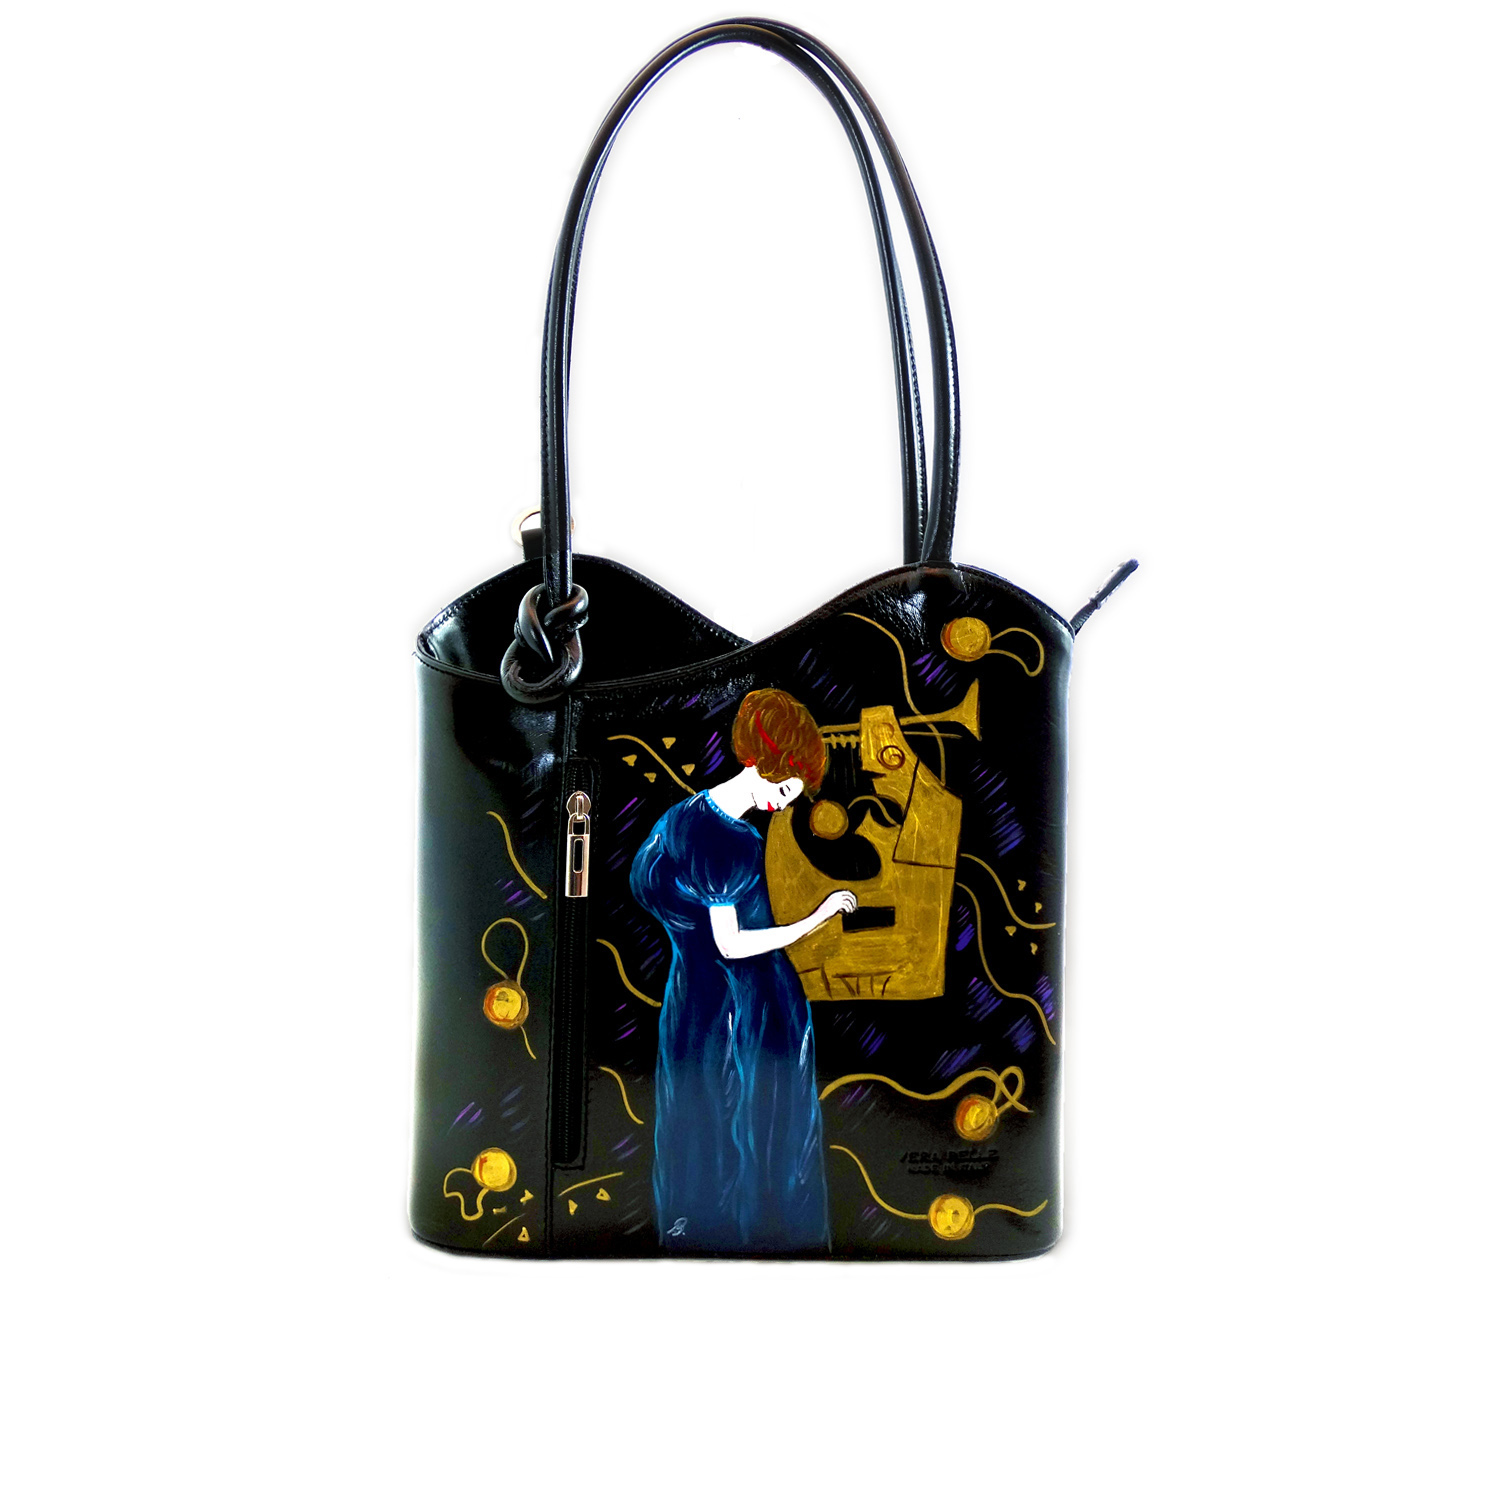 Hand painted bag - The Music by Klimt